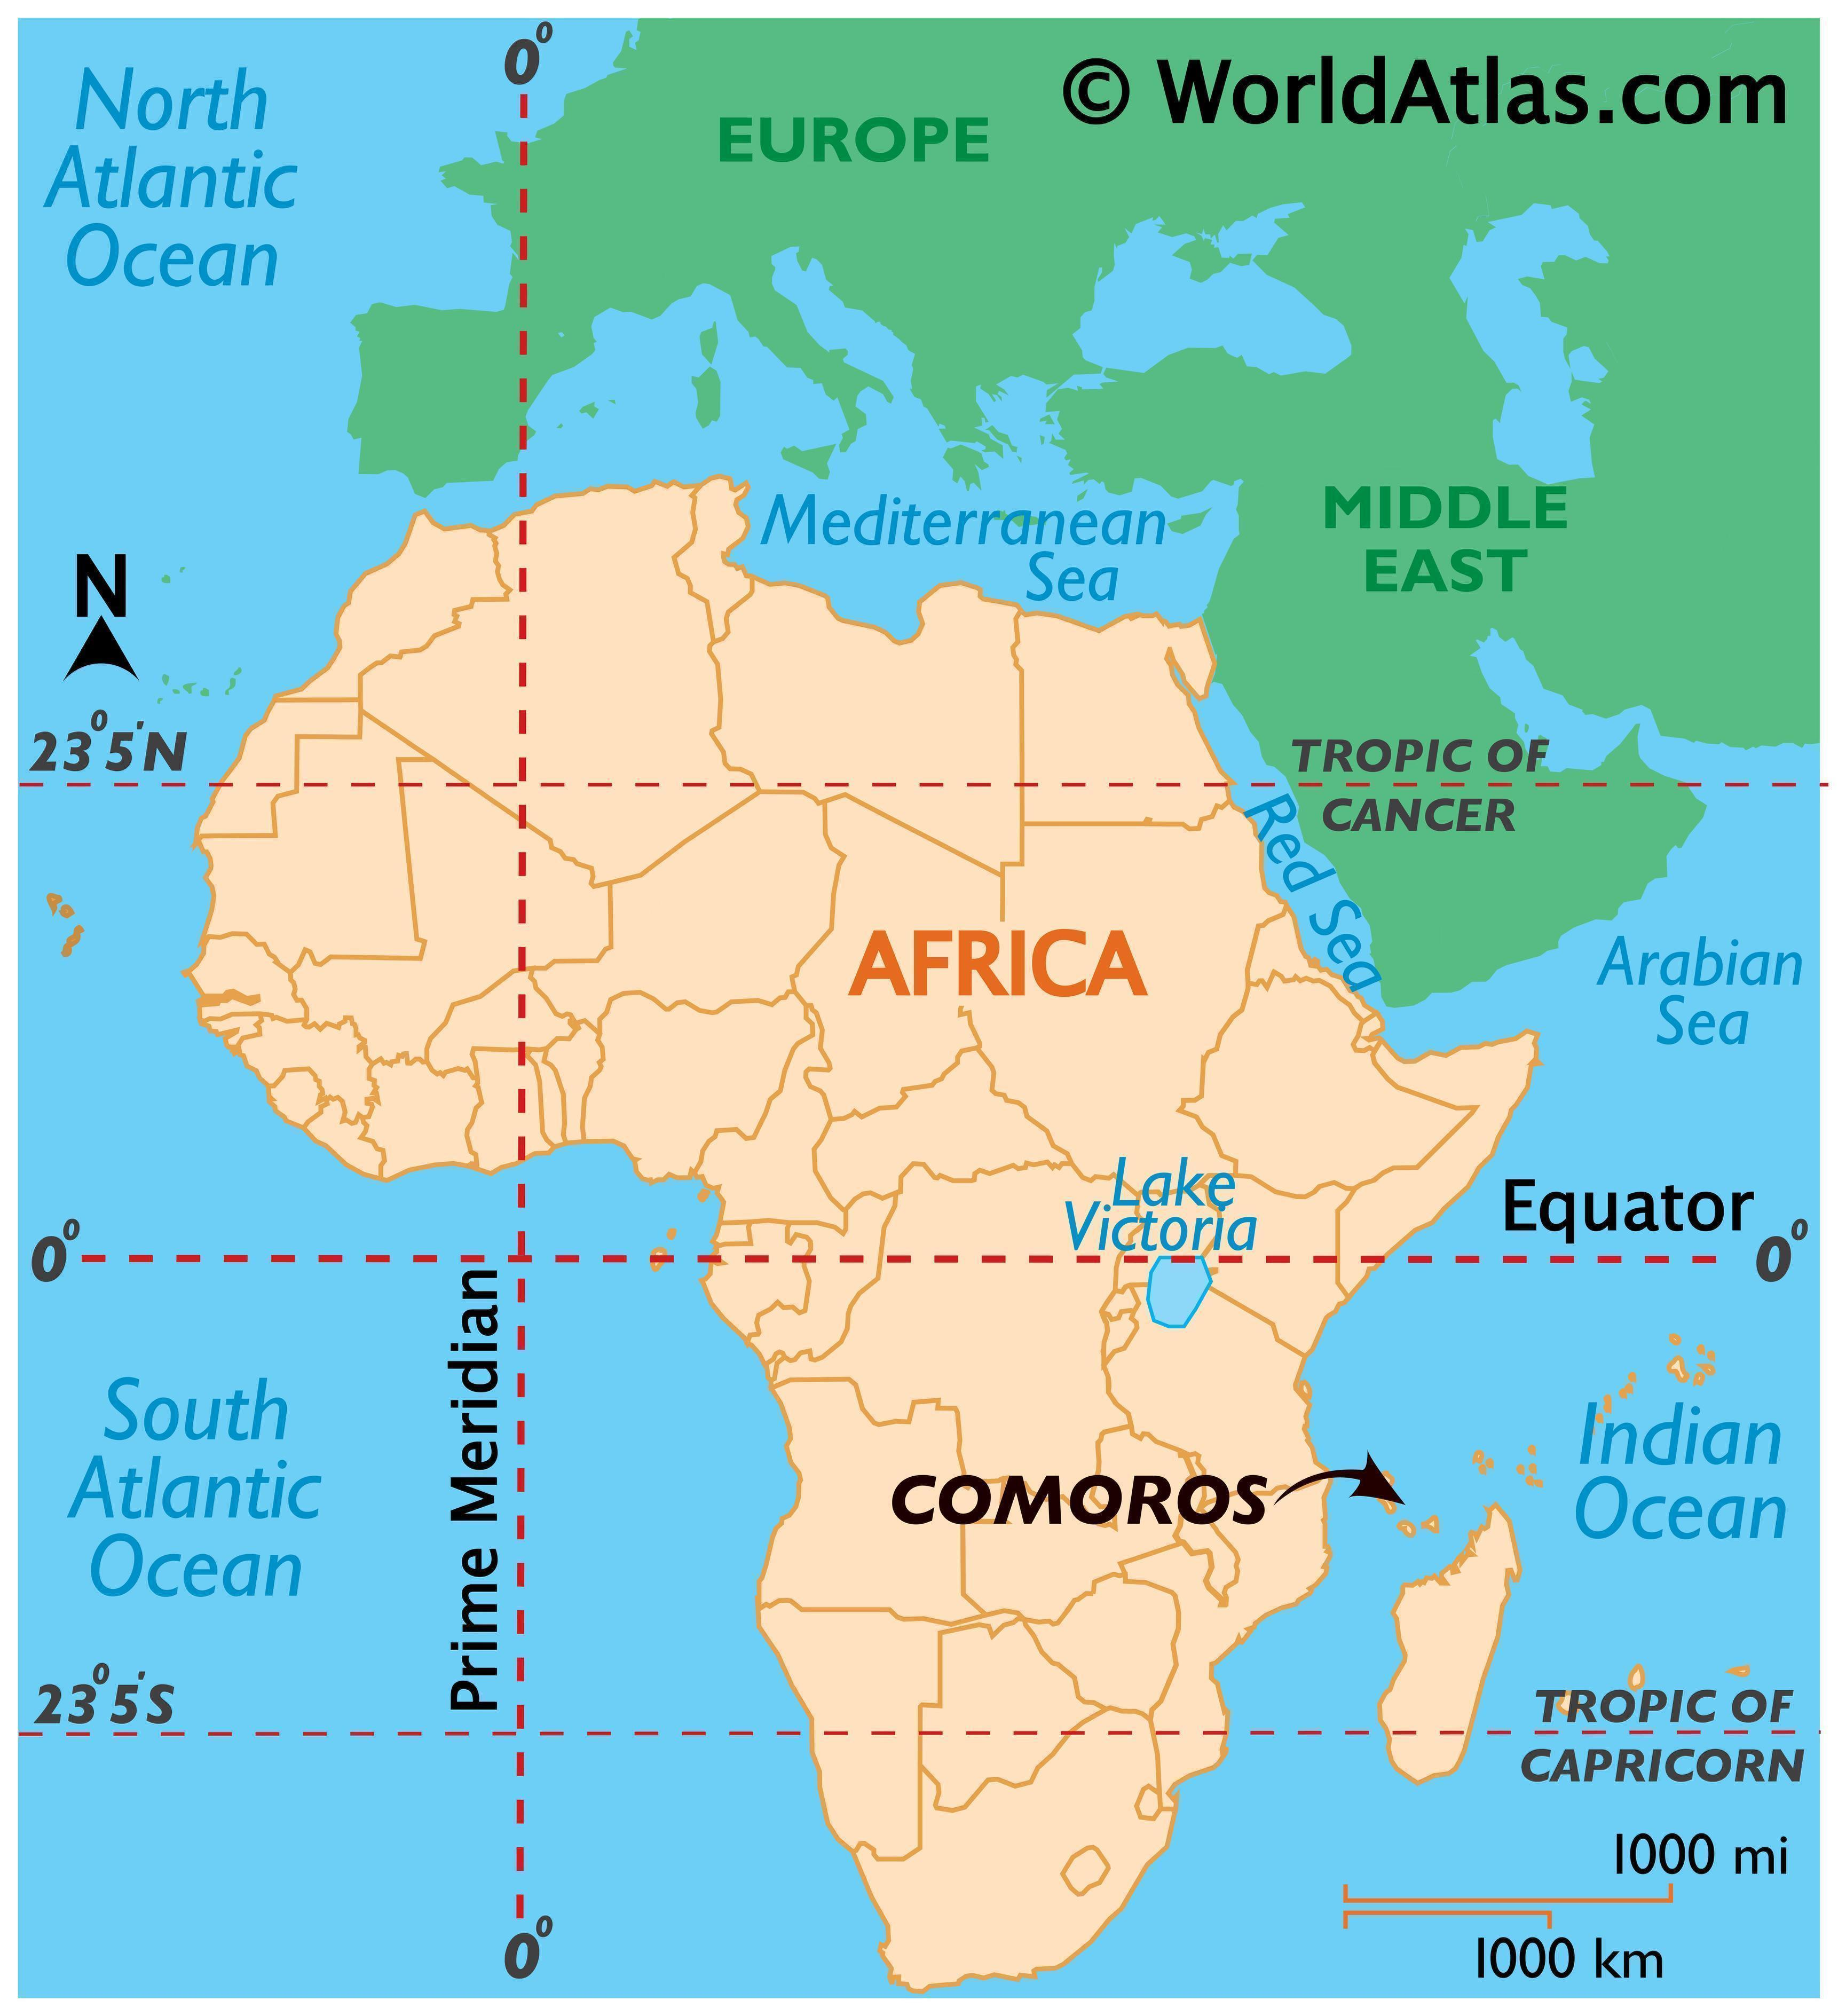 Where is Comoros?